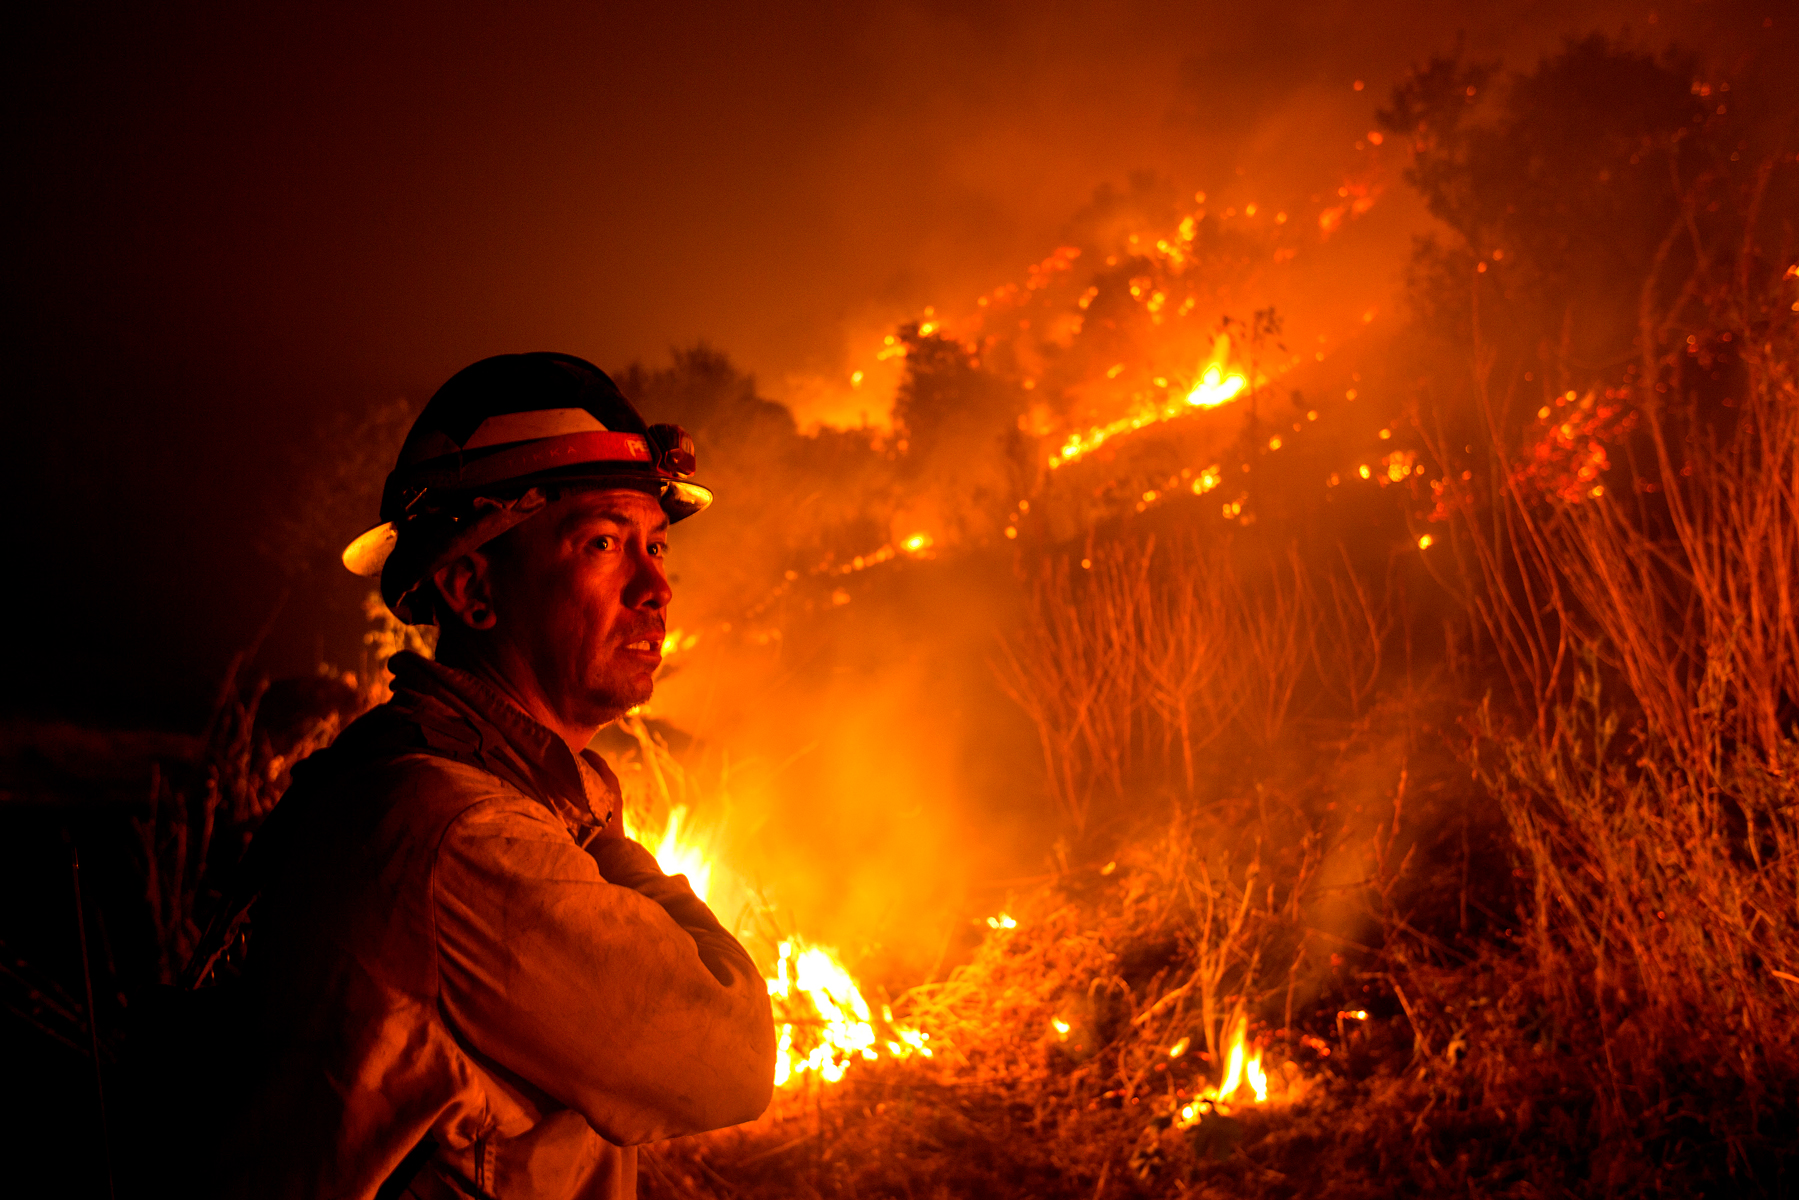 """A firefighter watches the Bobcat Fire burning on hillsides near Monrovia Canyon Park in Monrovia, California on September 15, 2020. - A major fire that has been raging outside Los Angeles for more than a week threatened to engulf a historic observatory and billion-dollar broadcast towers on September 15 as firefighters struggled to contain the flames. The so-called Bobcat Fire was within 500 feet (150 meters) from the 116-year-old Mt. Wilson Observatory, the US Forest Service said in a tweet, while fire officials said crews were in place """"ready to receive the fire."""" (Photo by RINGO CHIU / AFP) (Photo by RINGO CHIU/AFP via Getty Images)"""